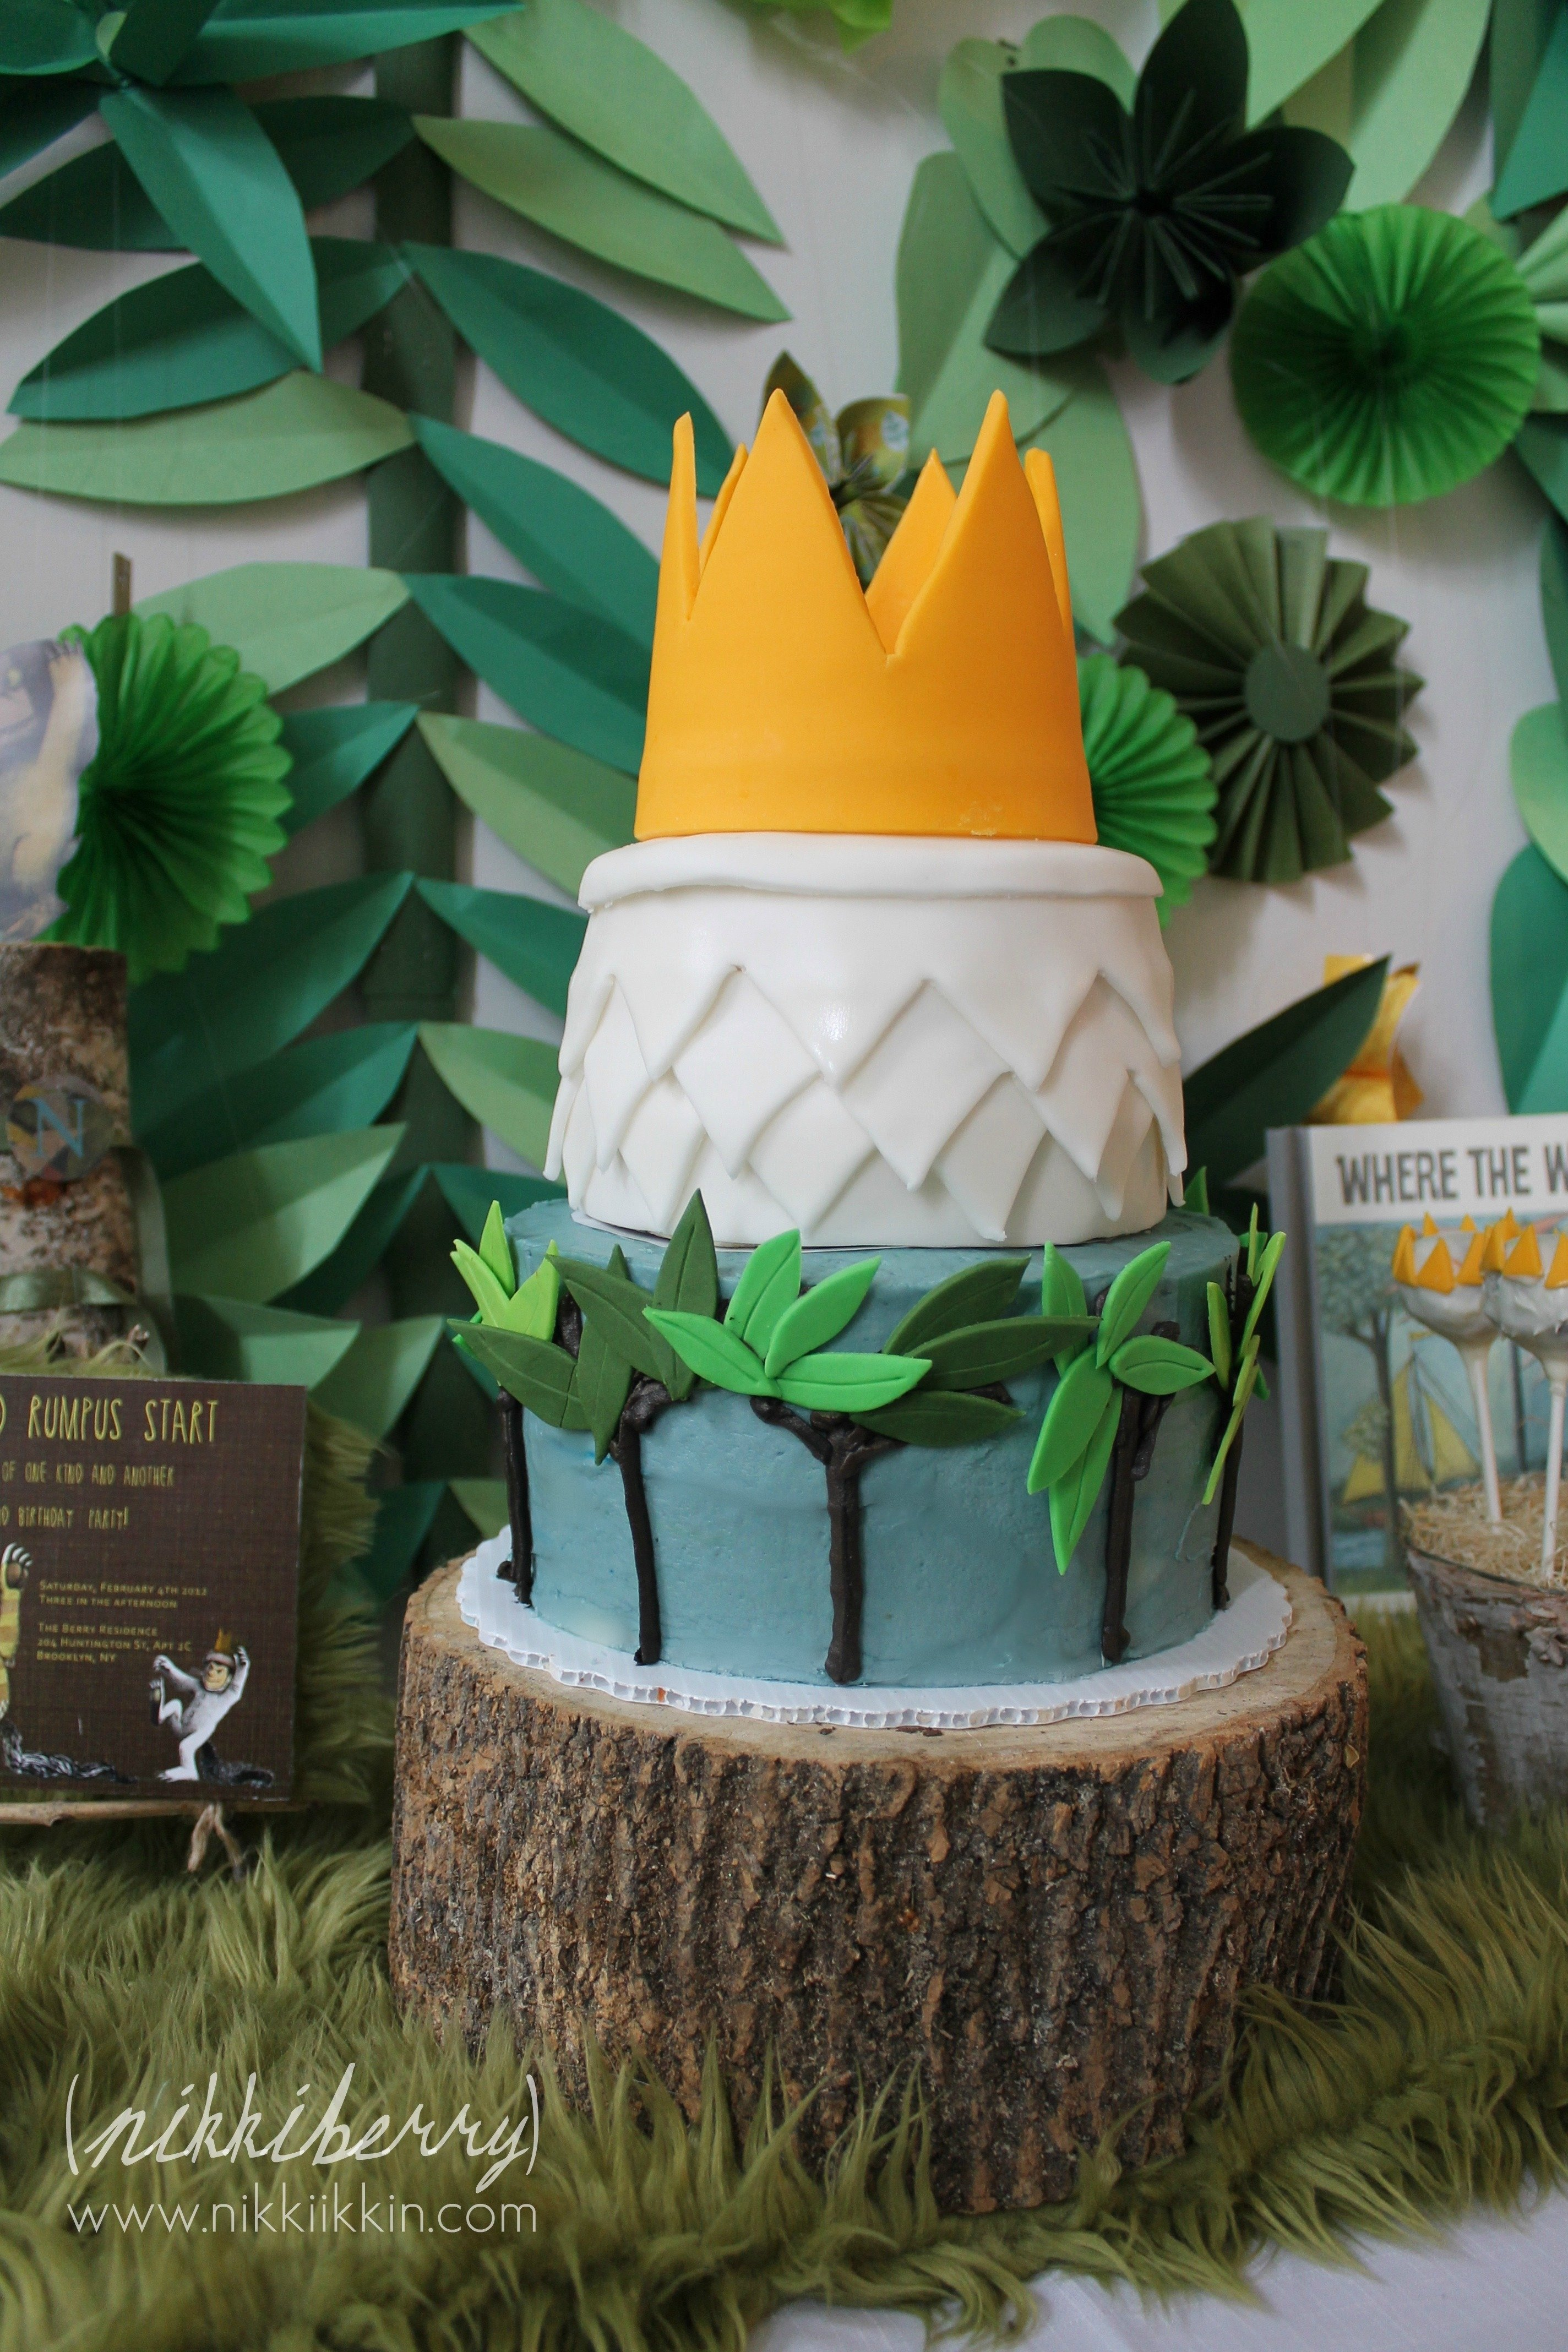 10 Famous Where The Wild Things Are Party Ideas where the wild things are party 2 2021